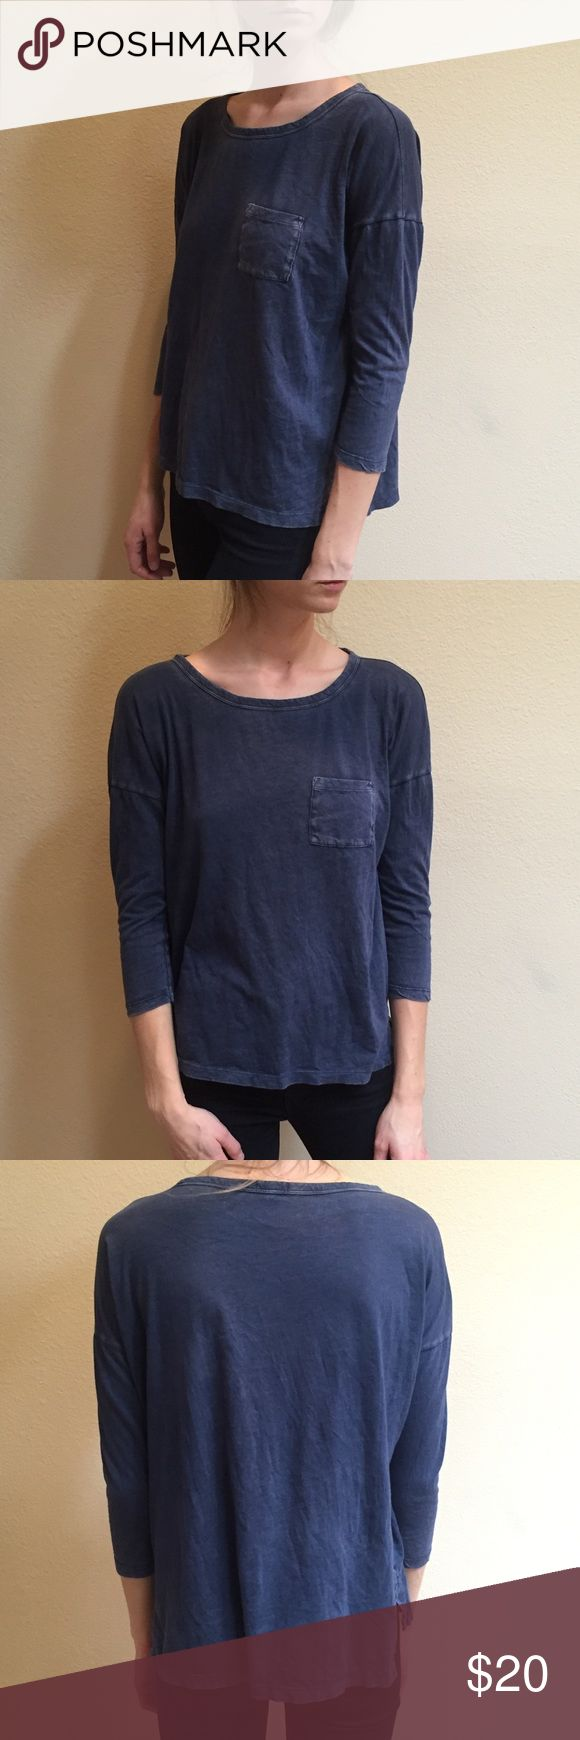 """🌵 NEW LISTING! 🌵 GAP Blue """"Denim"""" Tee Cute blue """"denim"""" looking tee with 3/4 length sleeves. Great if you're going for the slouchy look. A couple tiny holes that are barely noticeable at the bottom on the front. Happy to answer any questions! GAP Tops Tees - Short Sleeve"""